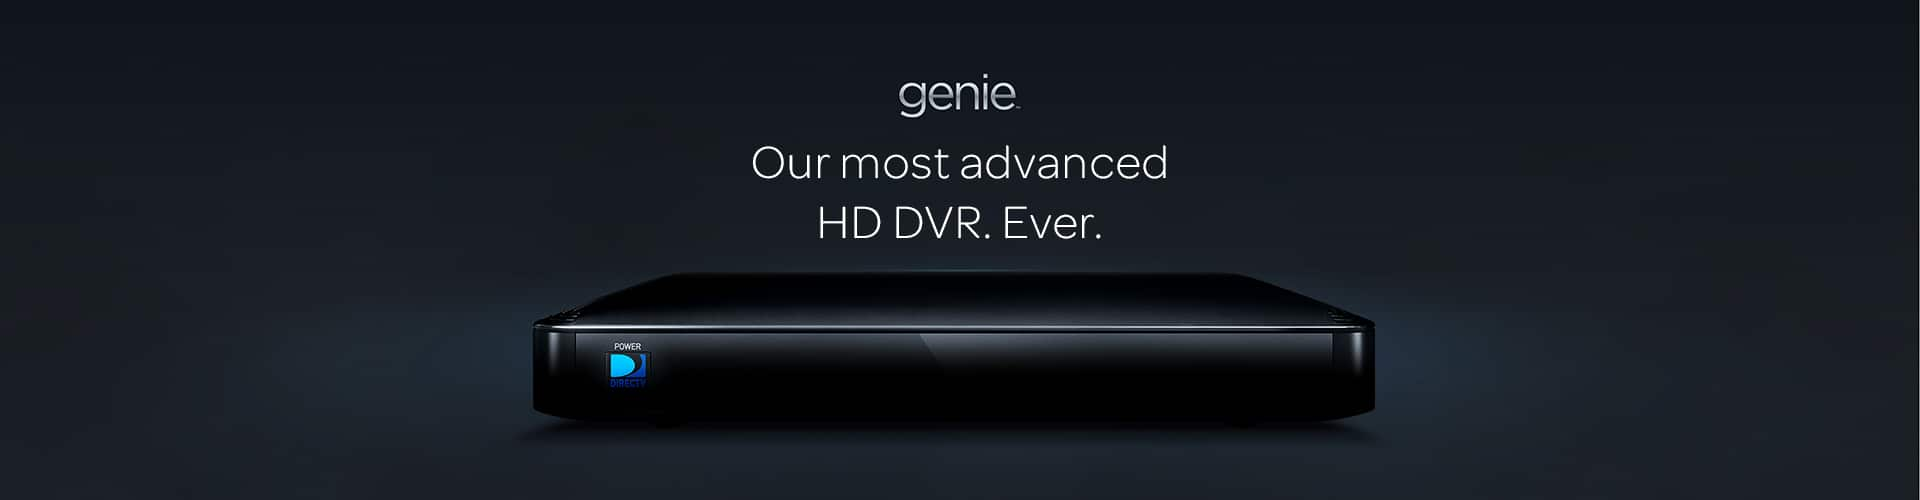 DIRECTV Genie HD DVR - Our Most Advanced DVR Ever